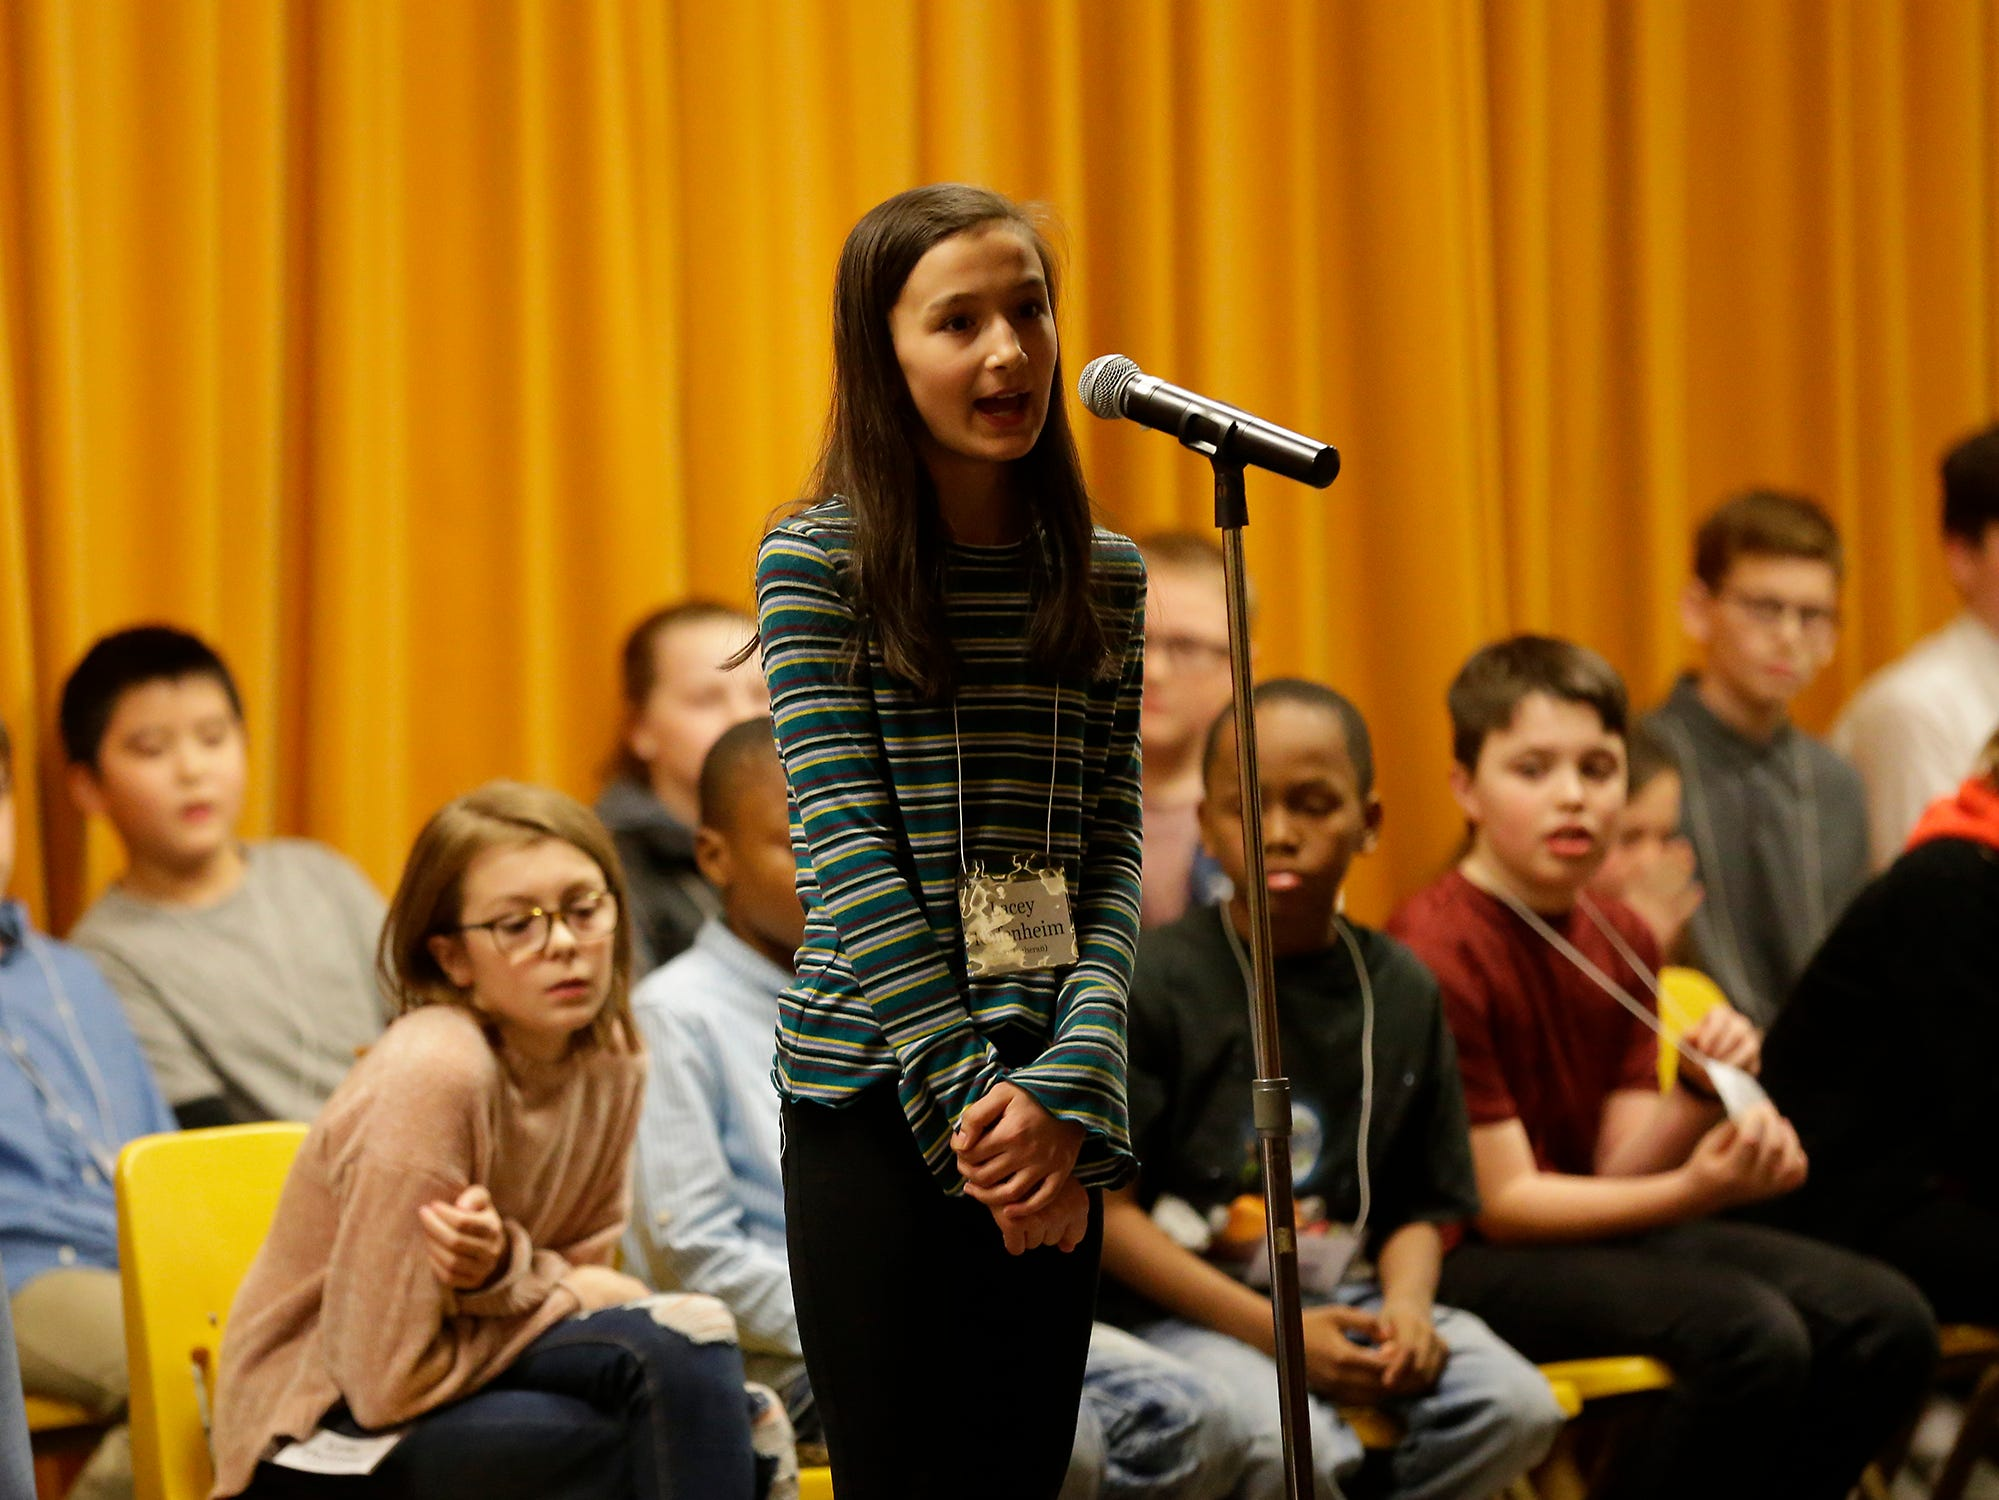 Lacy Keifenheim of Faith Lutheran competes in the Fond du Lac citywide spelling bee Tuesday, February 26, 2019 at These Middle School in Fond du Lac, Wis. Keifenheim ended up third in the competition. Doug Raflik/USA TODAY NETWORK-Wisconsin